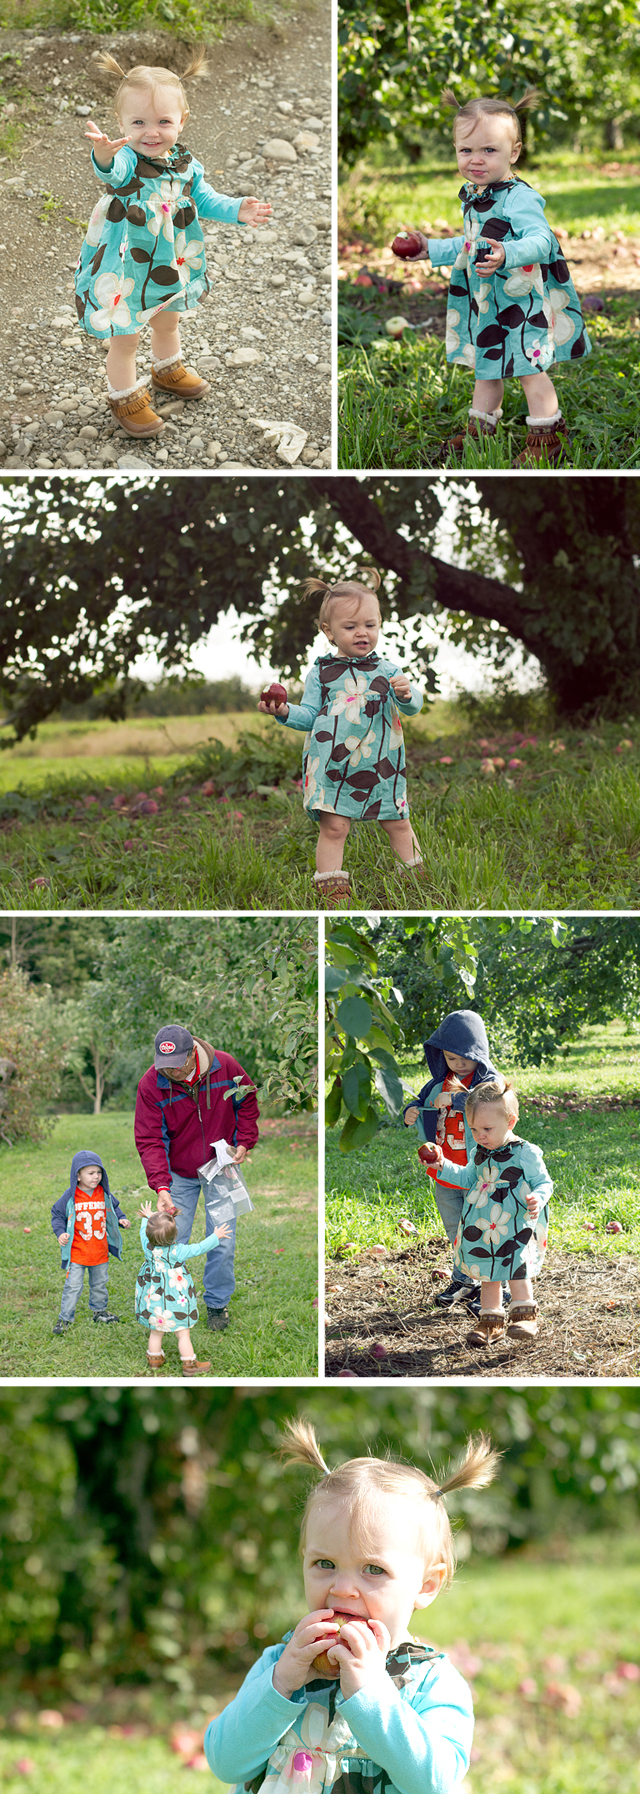 ApplePicking2011-Collage01